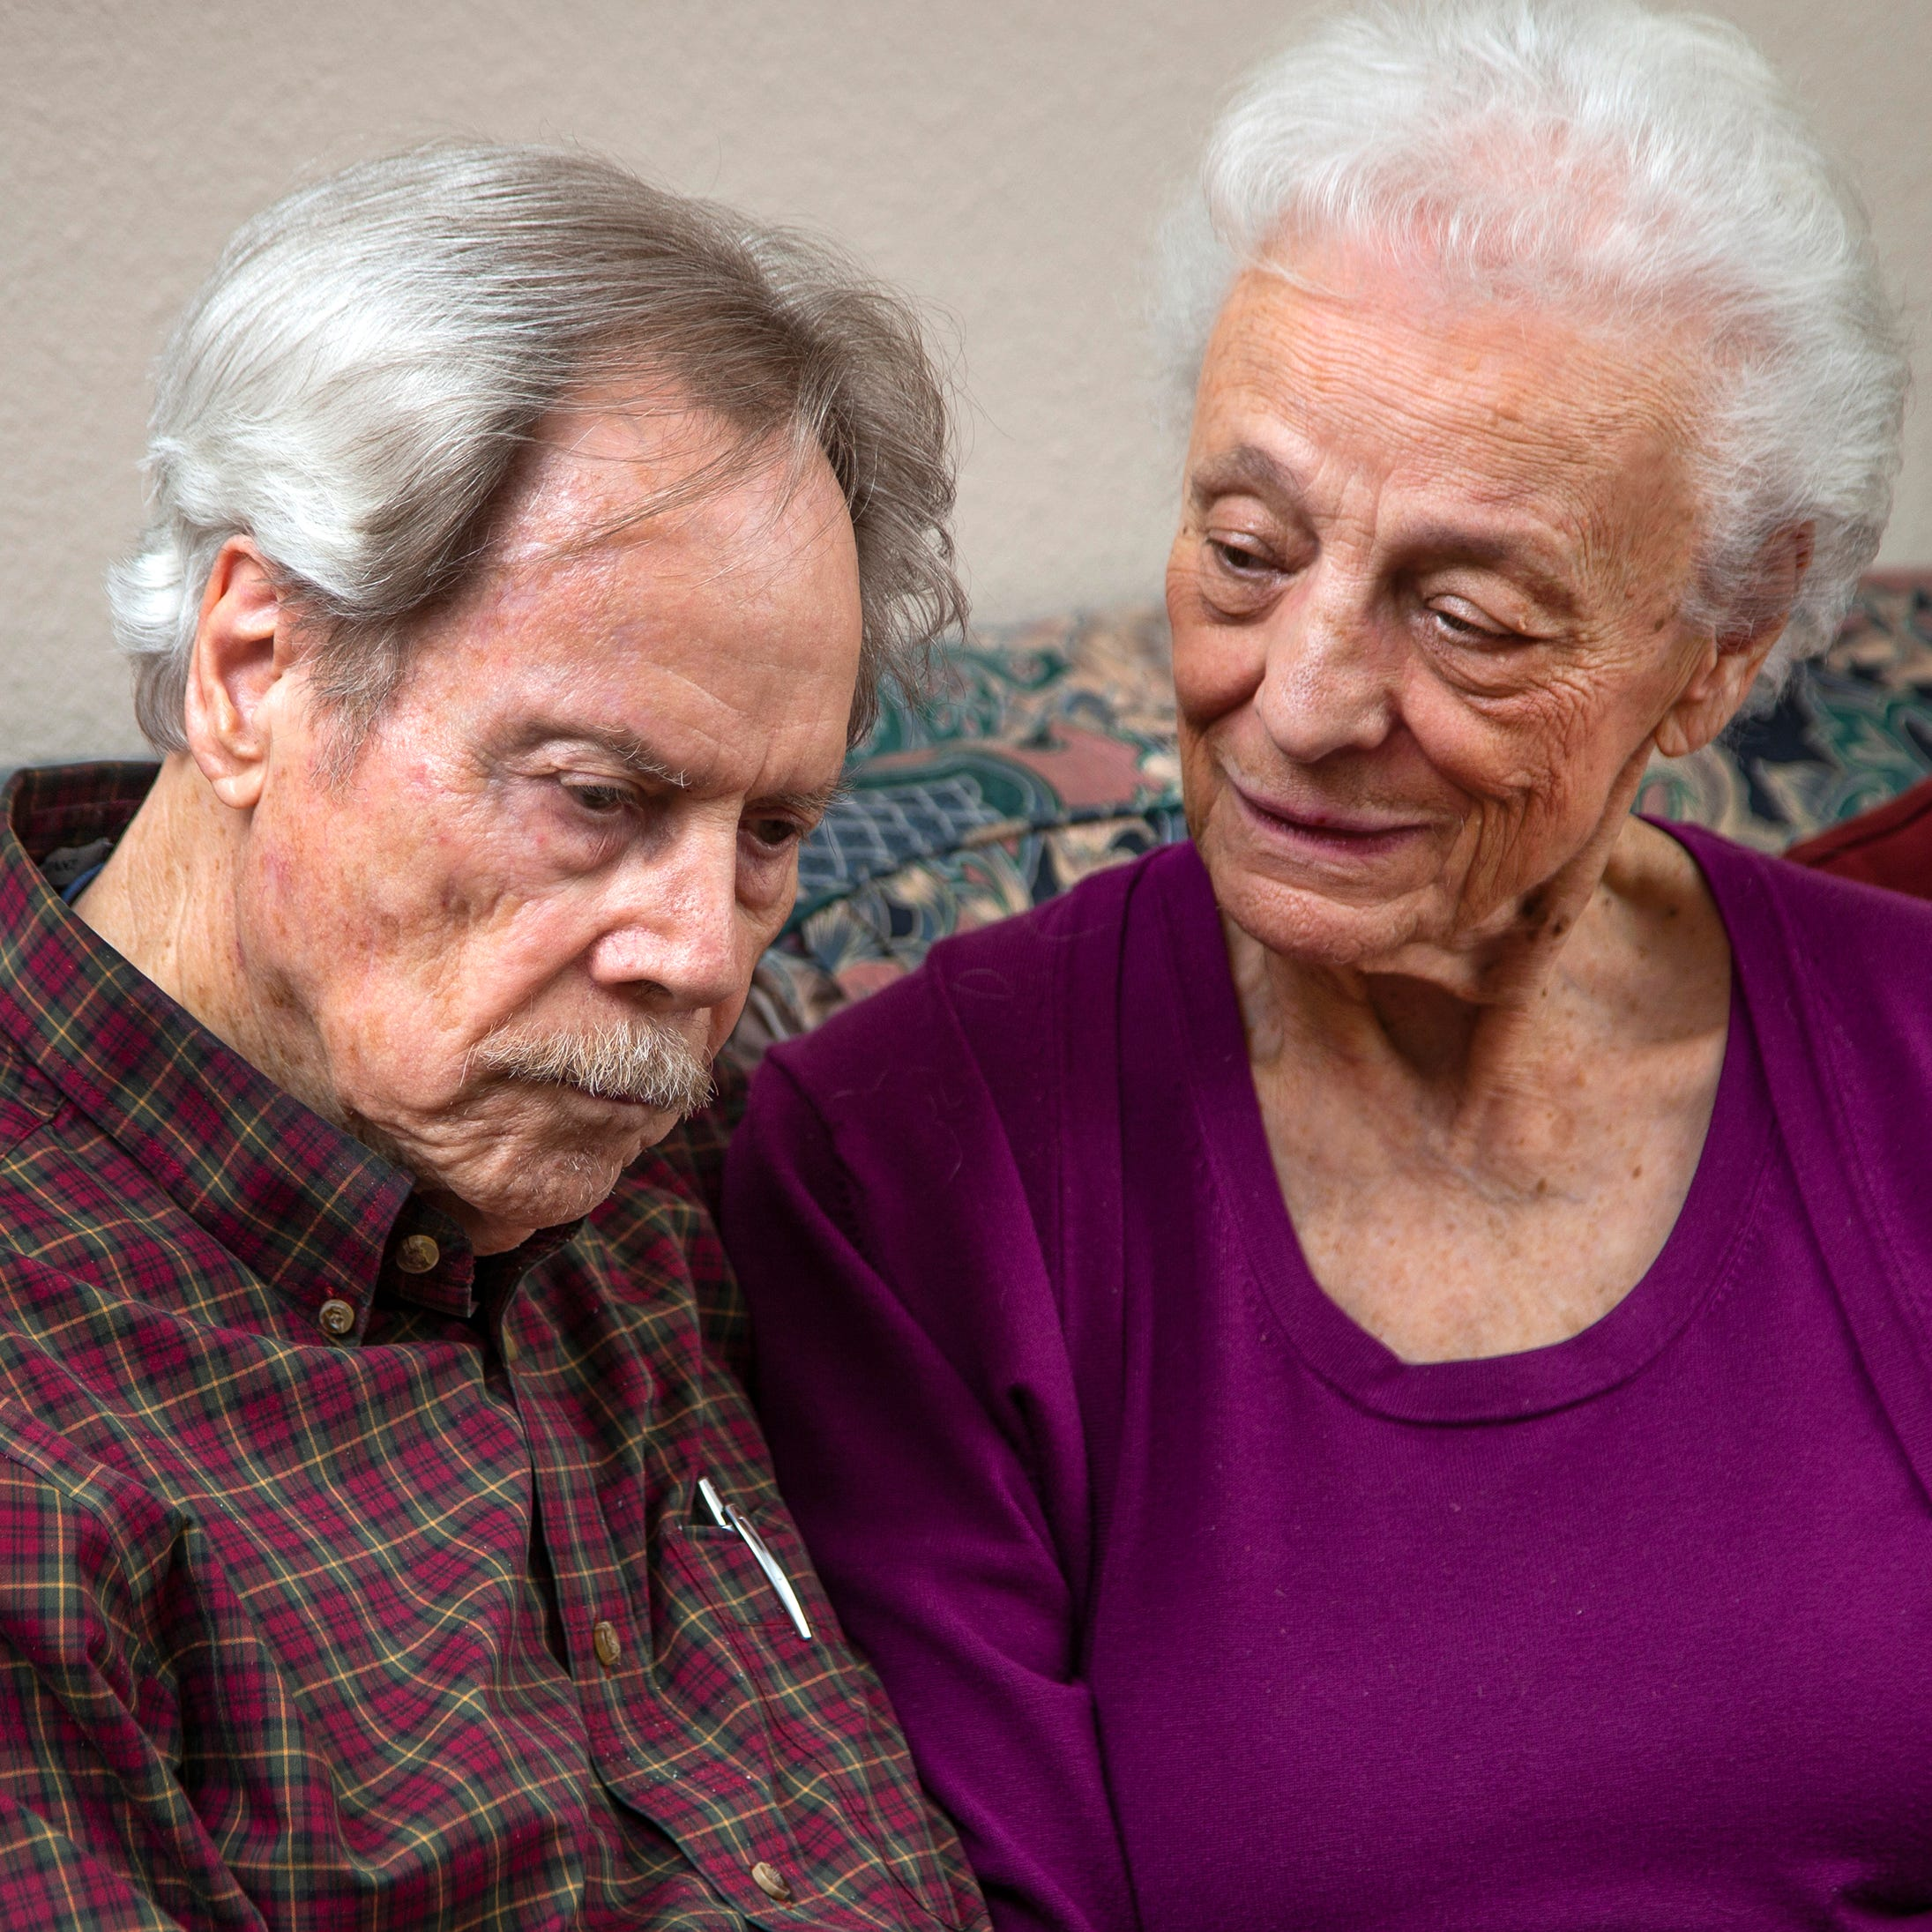 Frank and Betty Lusk are in their late 80s and say they were pressured into buying a $150,000 timeshare with $19,000 yearly maintenance fees by Diamond Resorts. They talk about their ordeal at their West Valley home March 19, 2019.